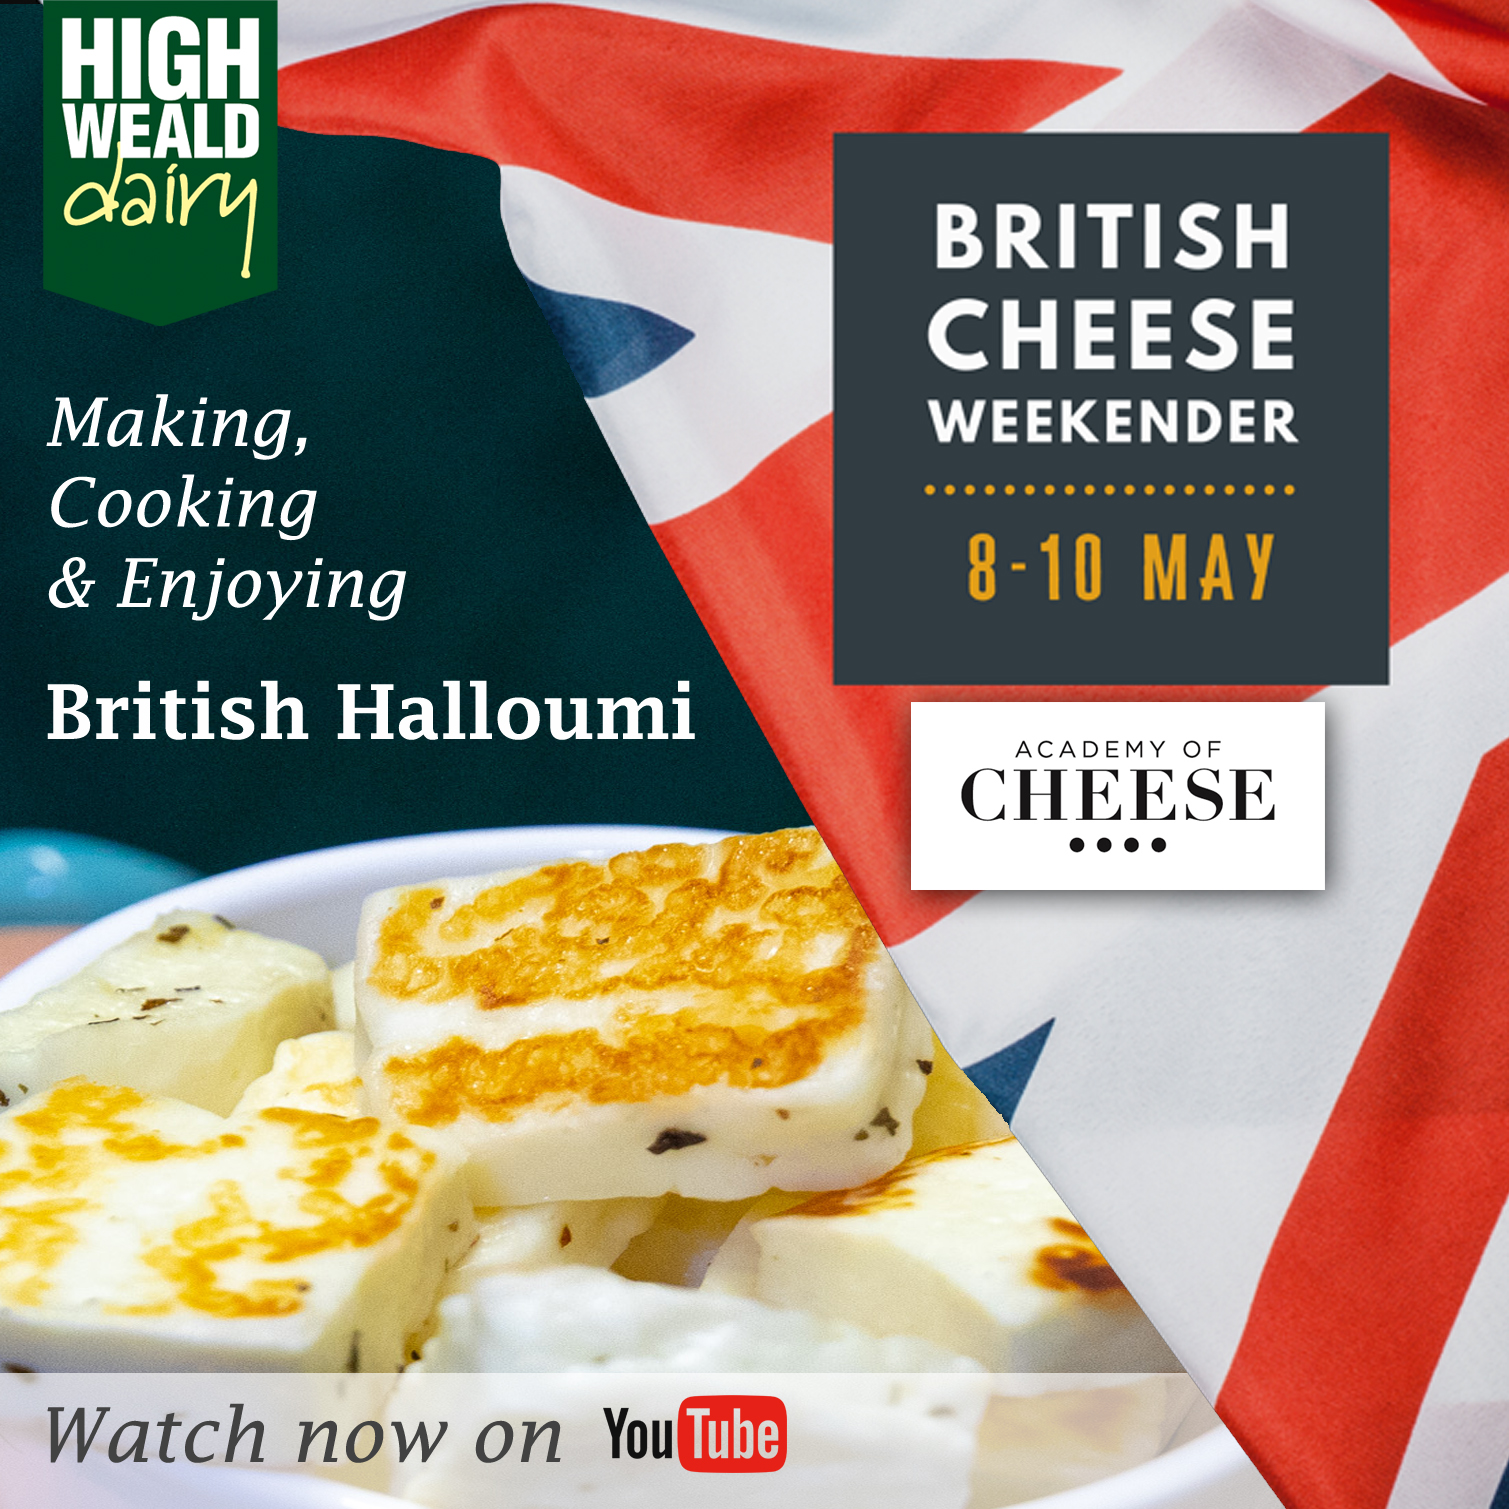 Make, Cook & Enjoy British Halloumi